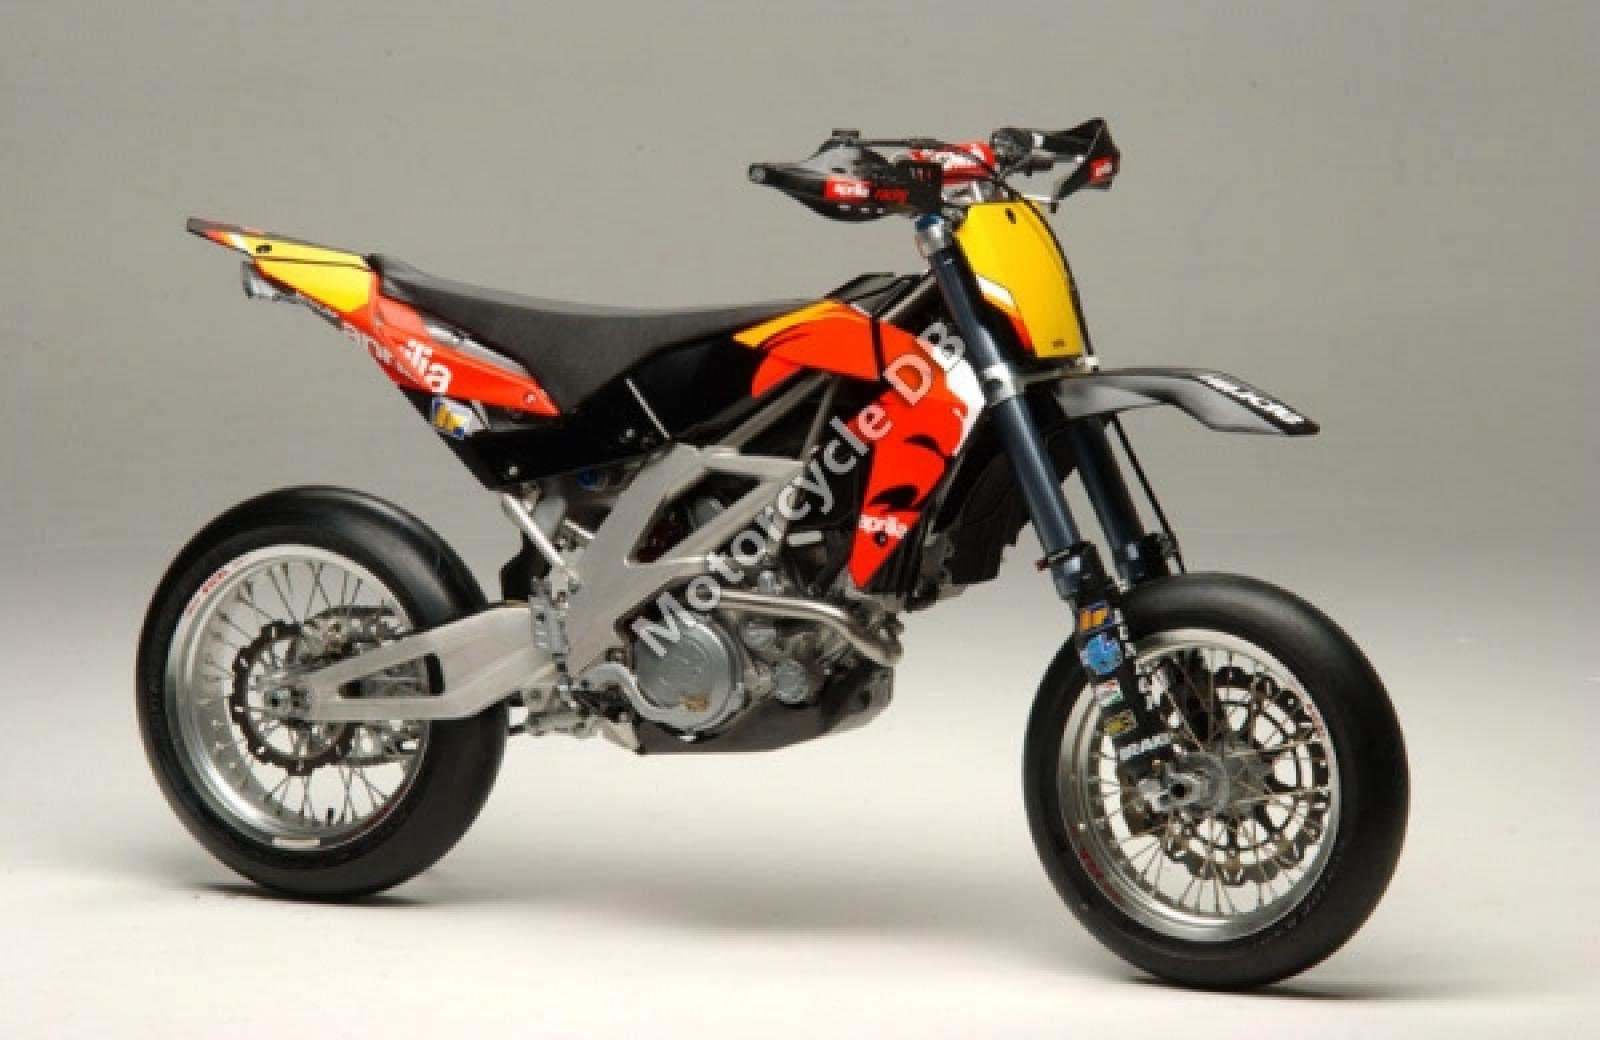 Highland 950 V2 Outback Supermoto 2007 images #74855